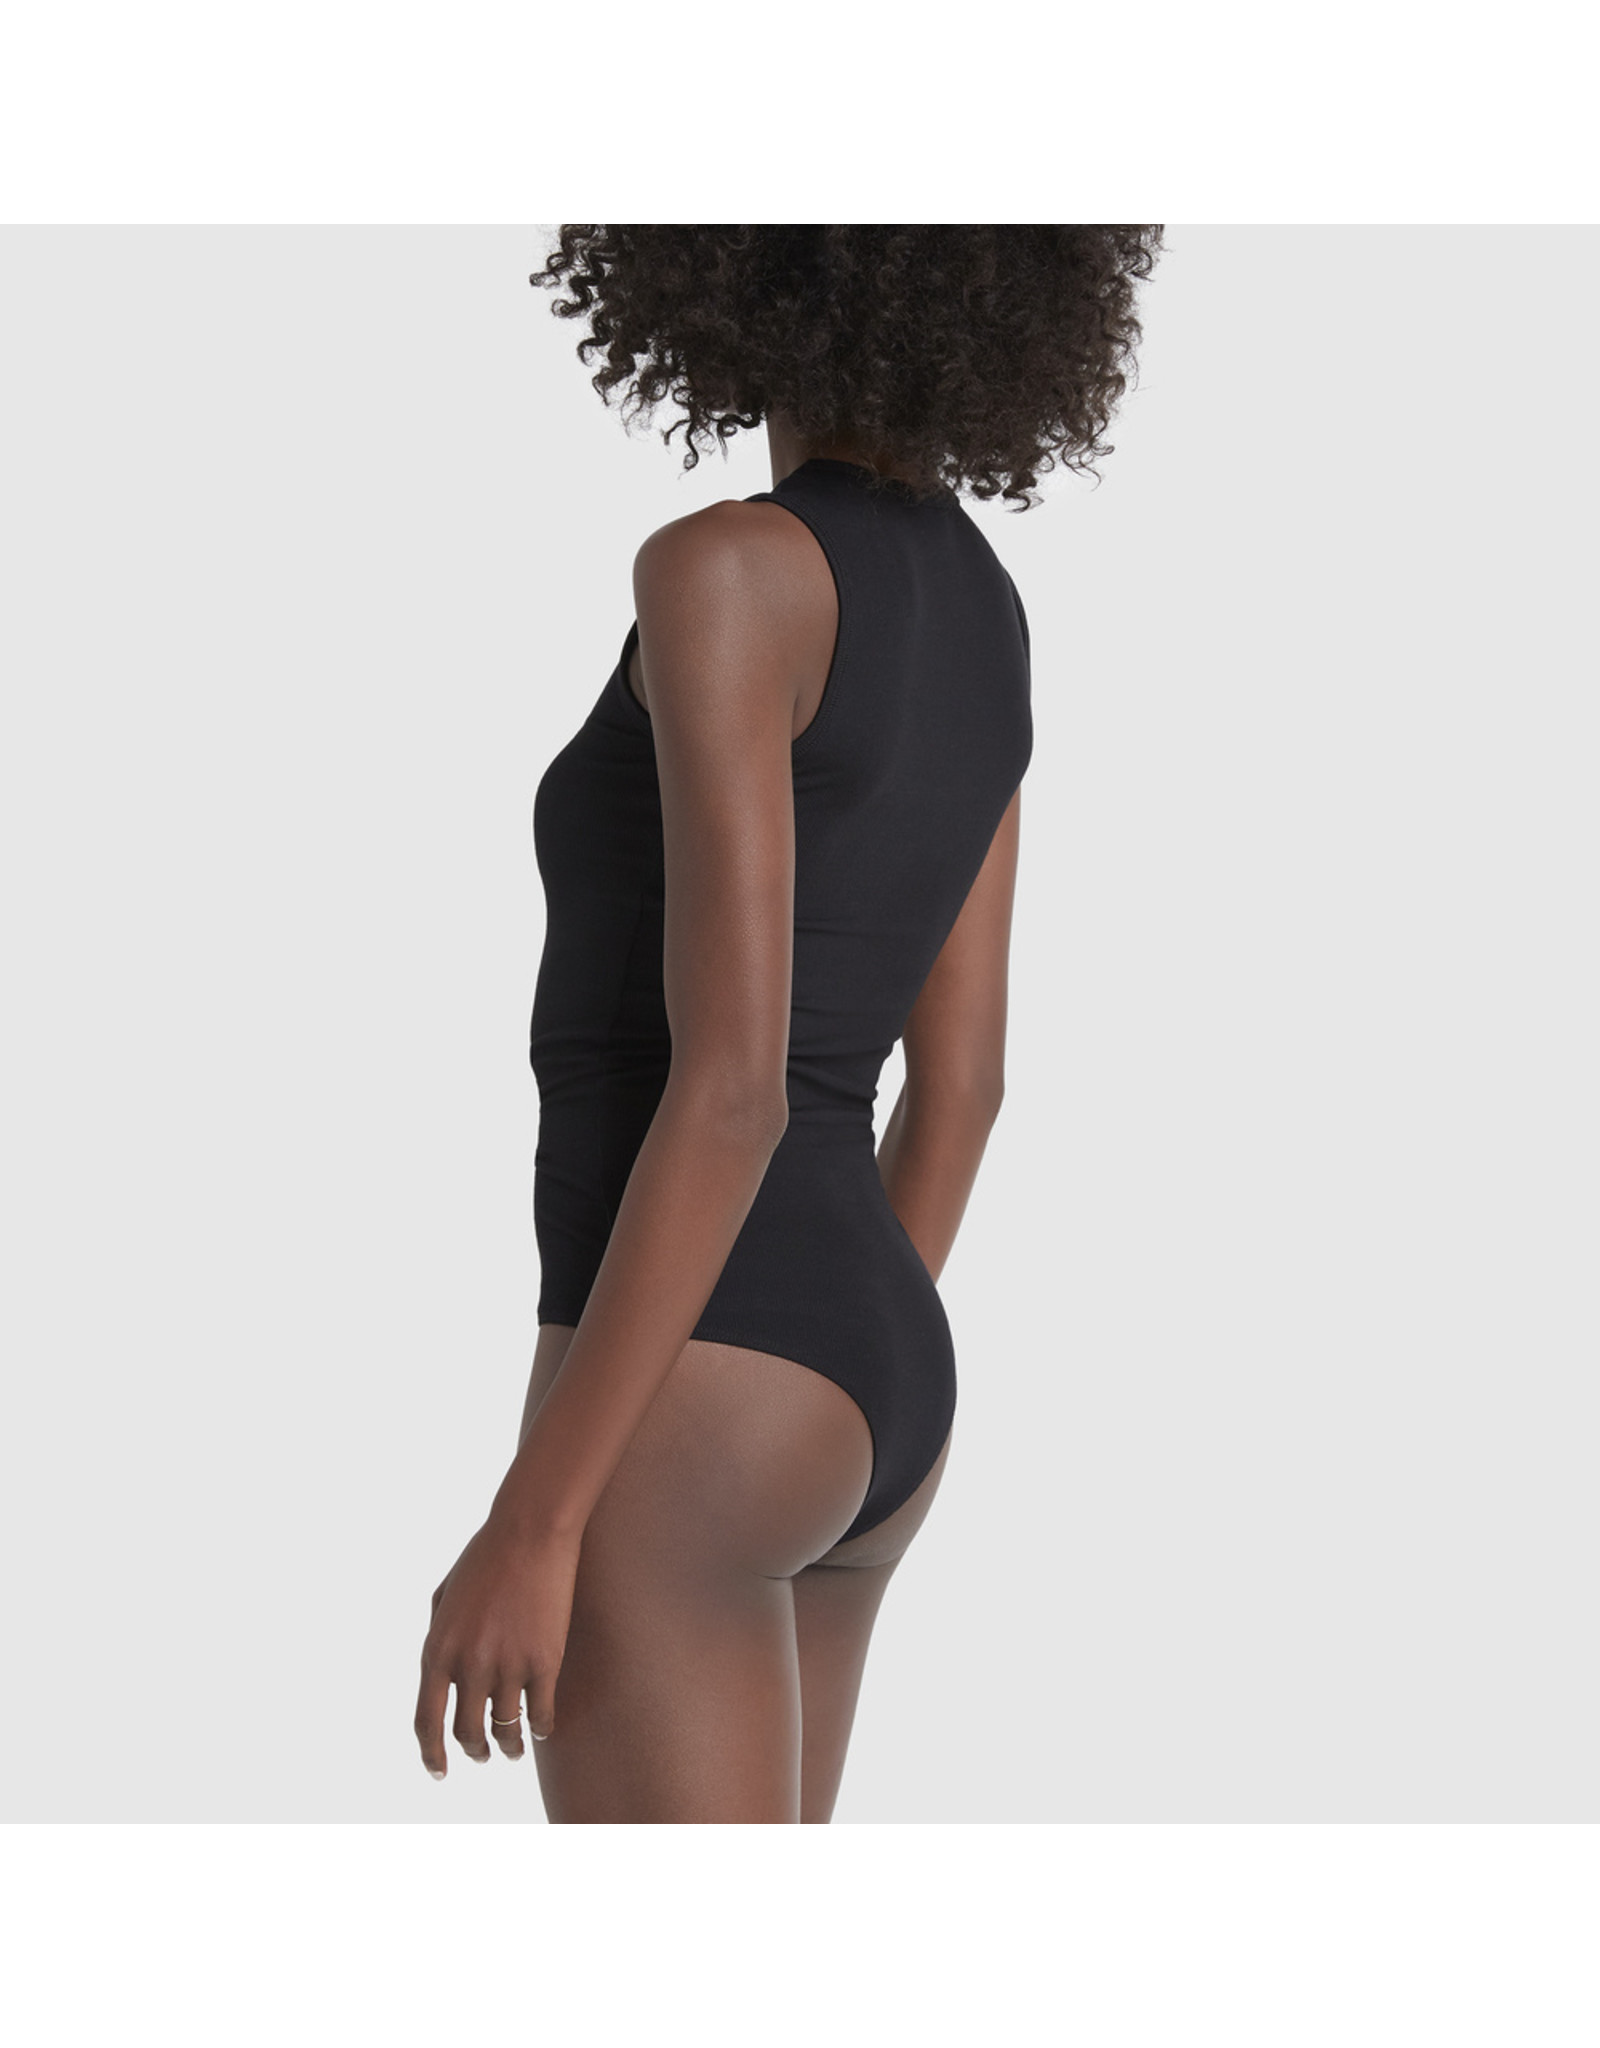 G. Label G. Label Amanda Bodysuit Reg (Color: Black, Size: M)